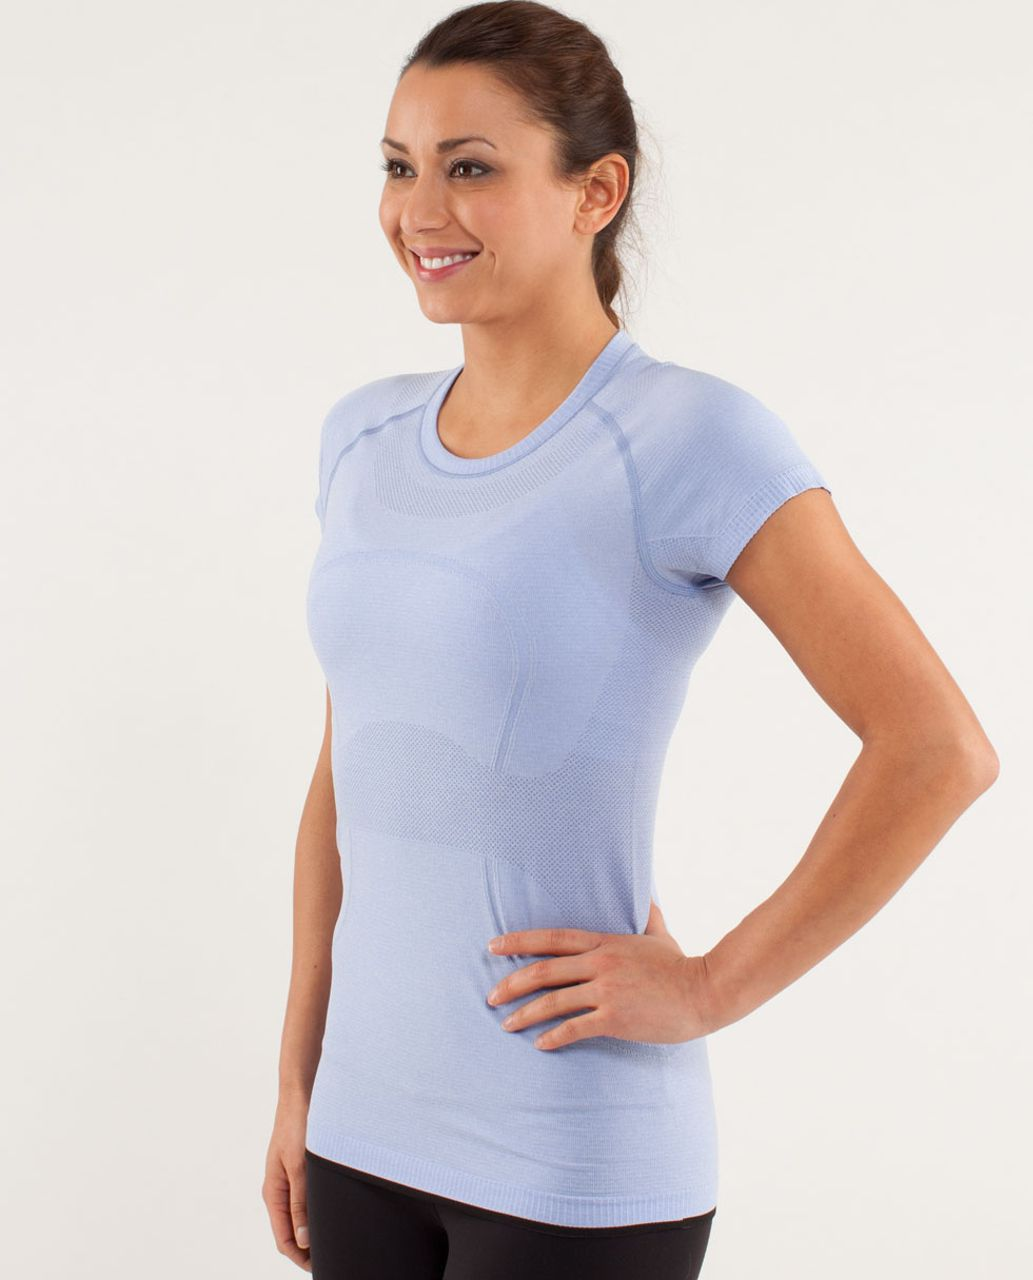 Lululemon Run:  Swiftly Tech Short Sleeve - Polar Haze / Black